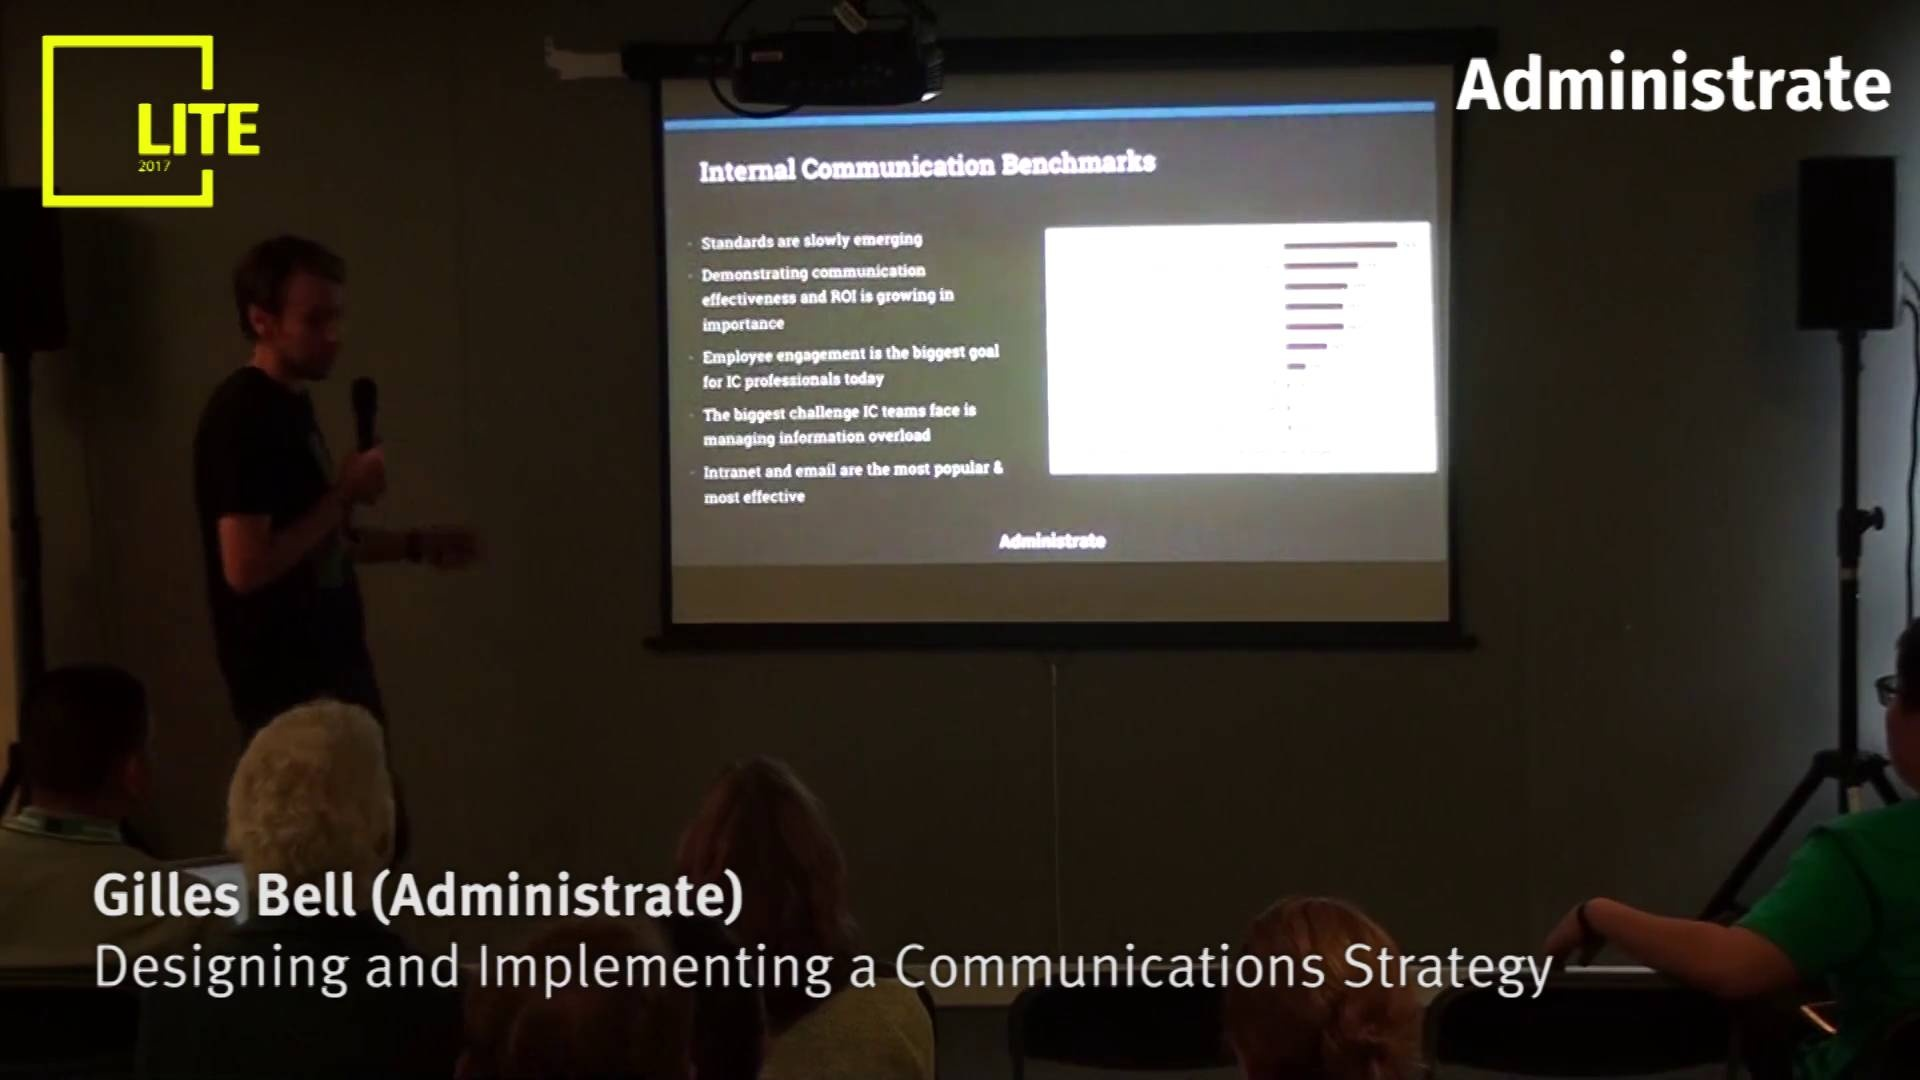 Designing and Implementing a Communications Strategy [Gilles Bell]